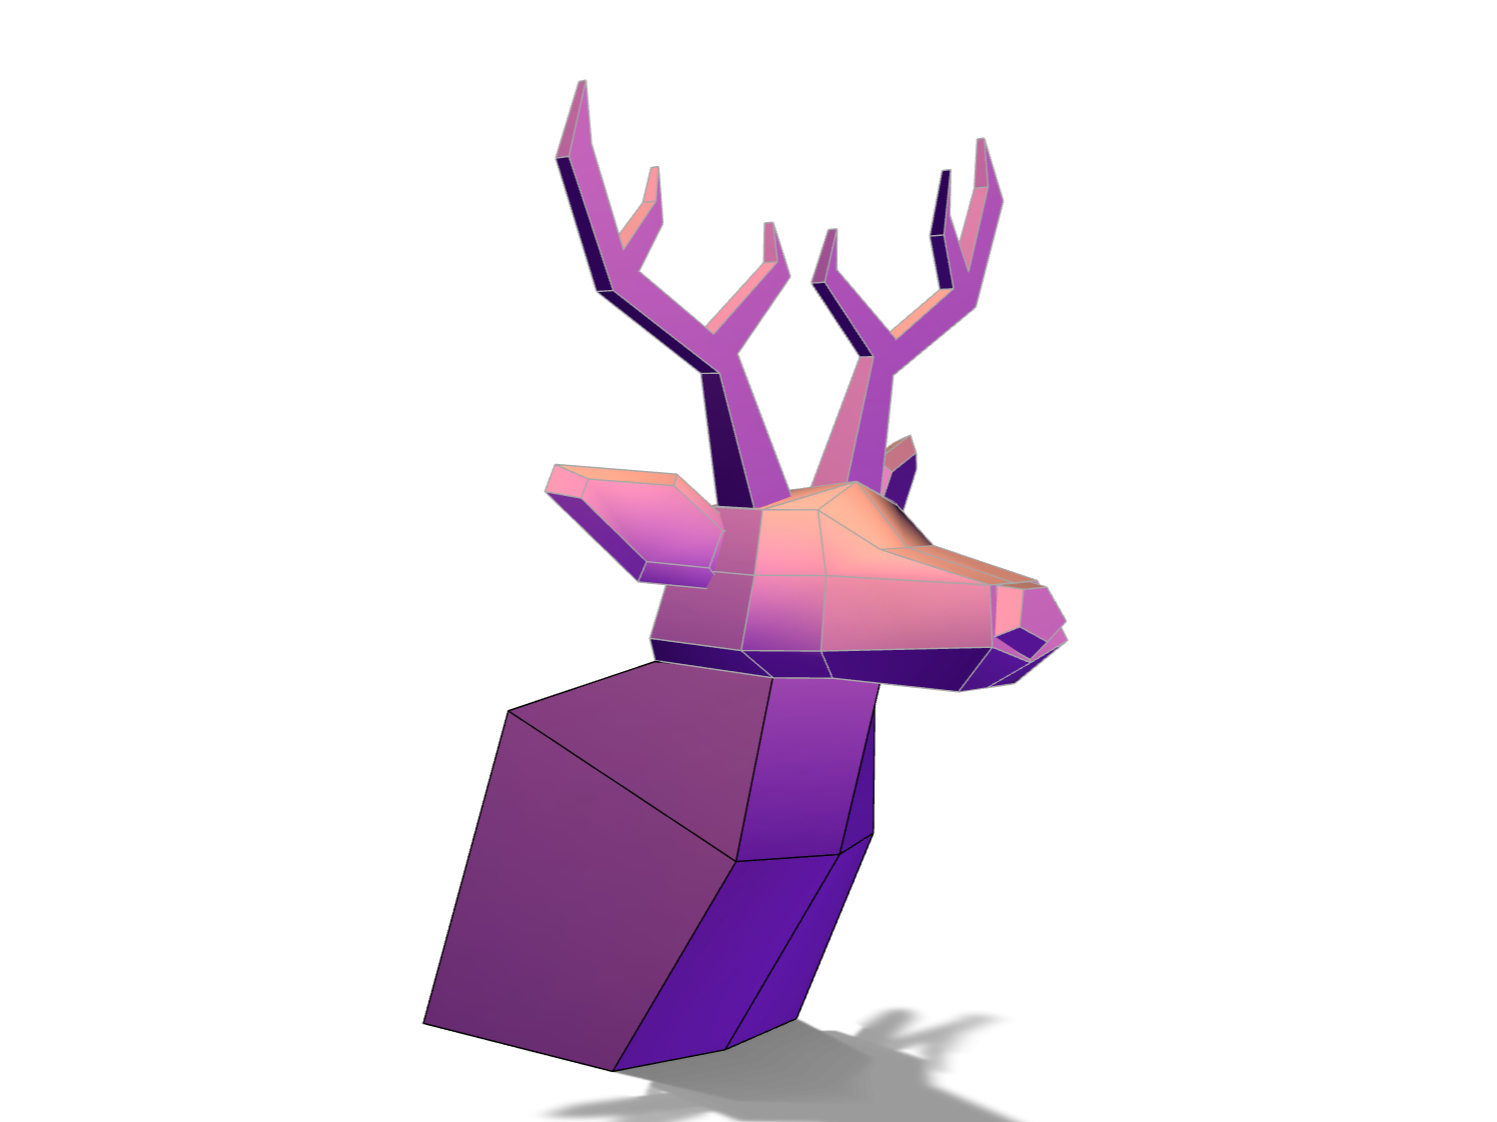 Low poly deer - 3D design by Youri Lepointe Dec 5, 2017